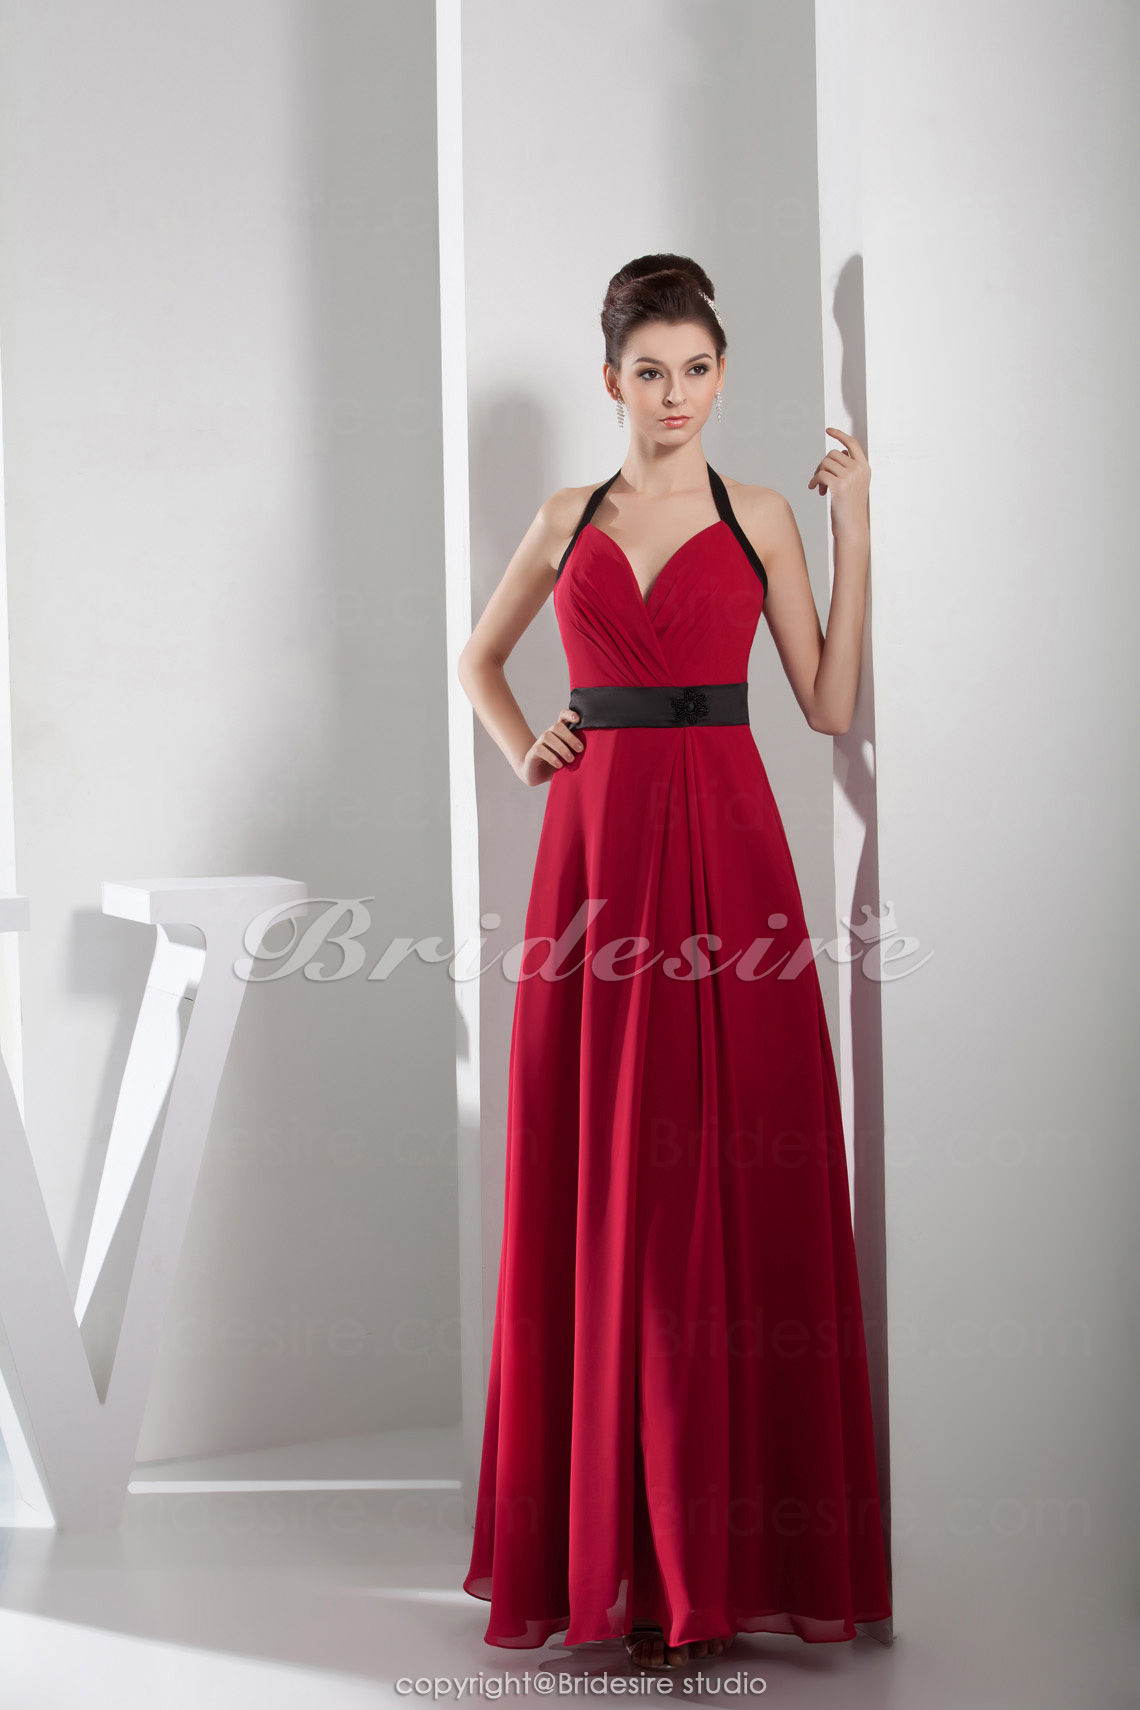 A-line Halter Floor-length Sleeveless Satin Chiffon Dress